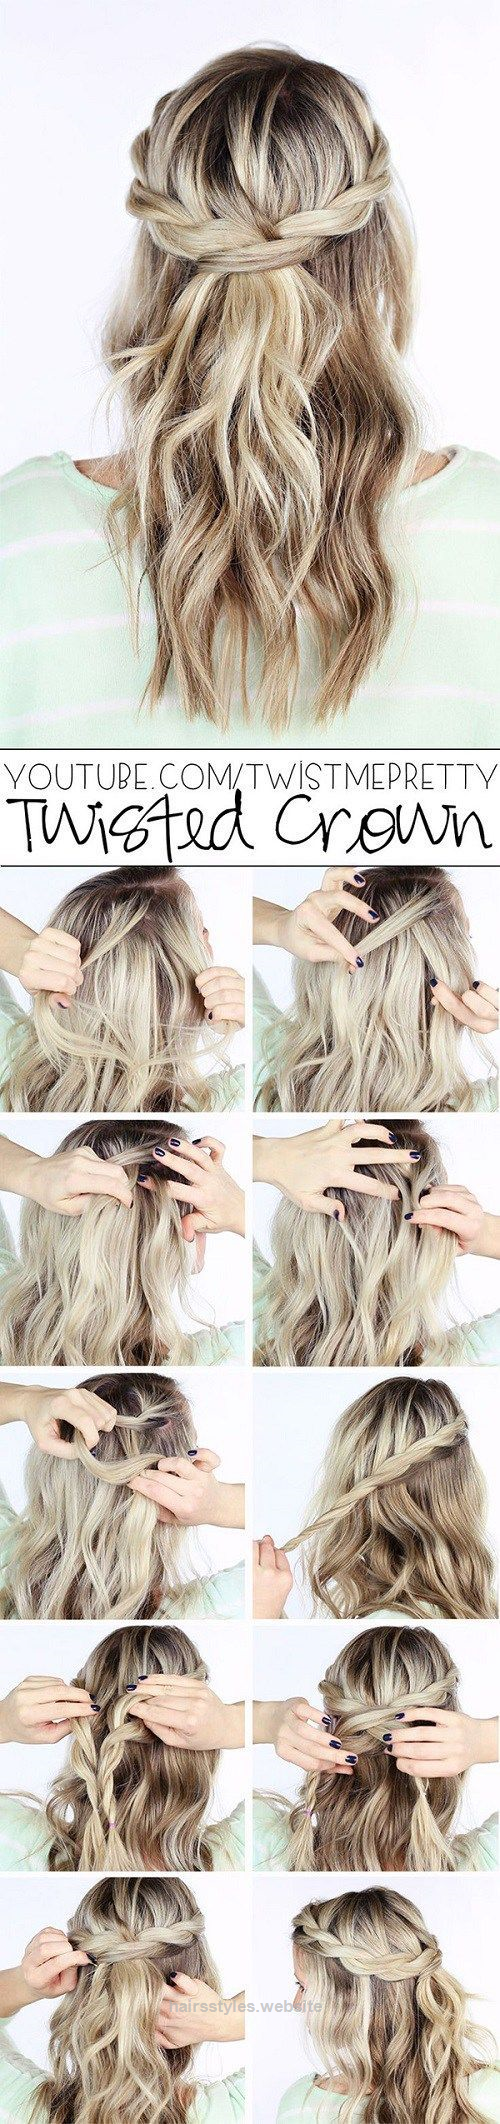 Hair tutorials for long hair and medium length hair rnbjunkiex